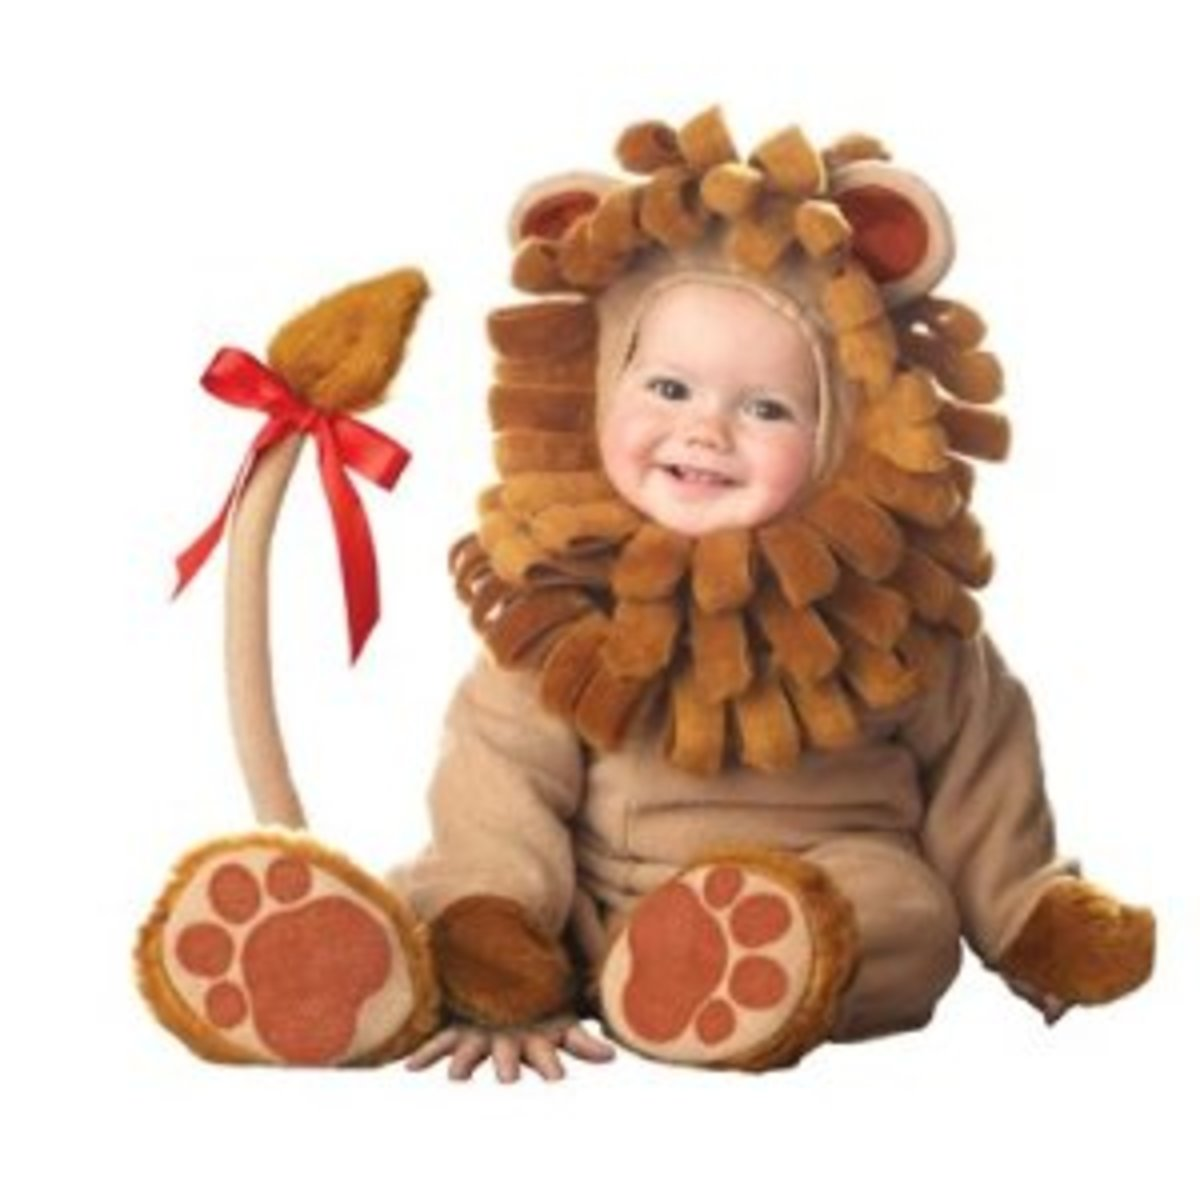 This adorable lion costume is perfect for Baby's first Halloween!